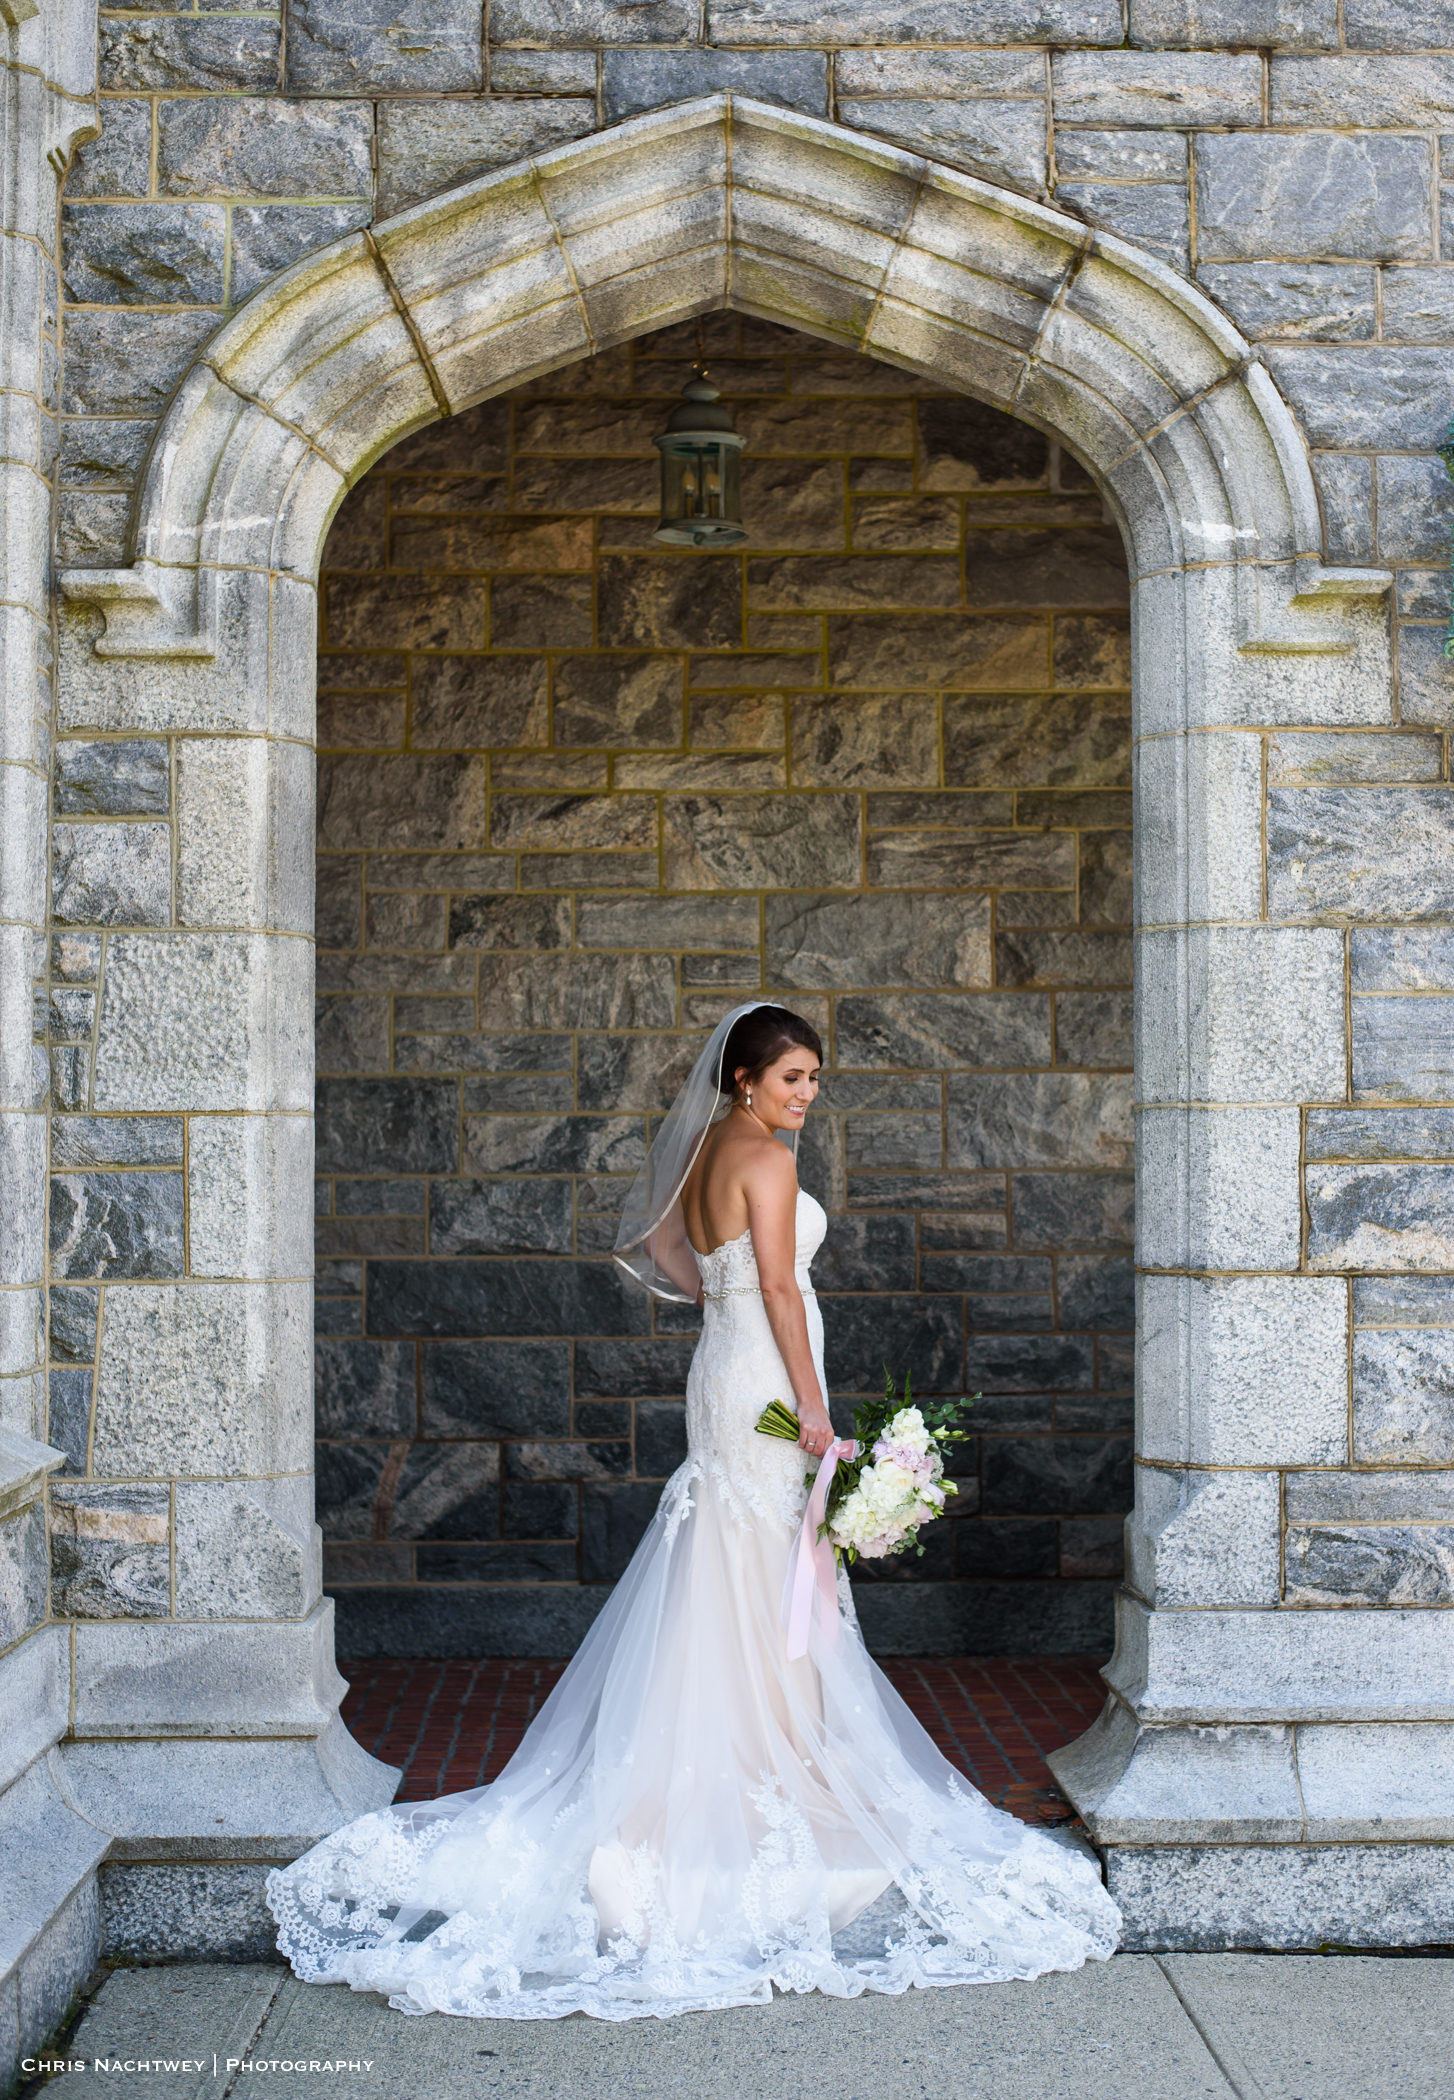 wedding-branford-house-groton-connecticut-photos-chris-nachtwey-amanda-todd-2018-13.jpg